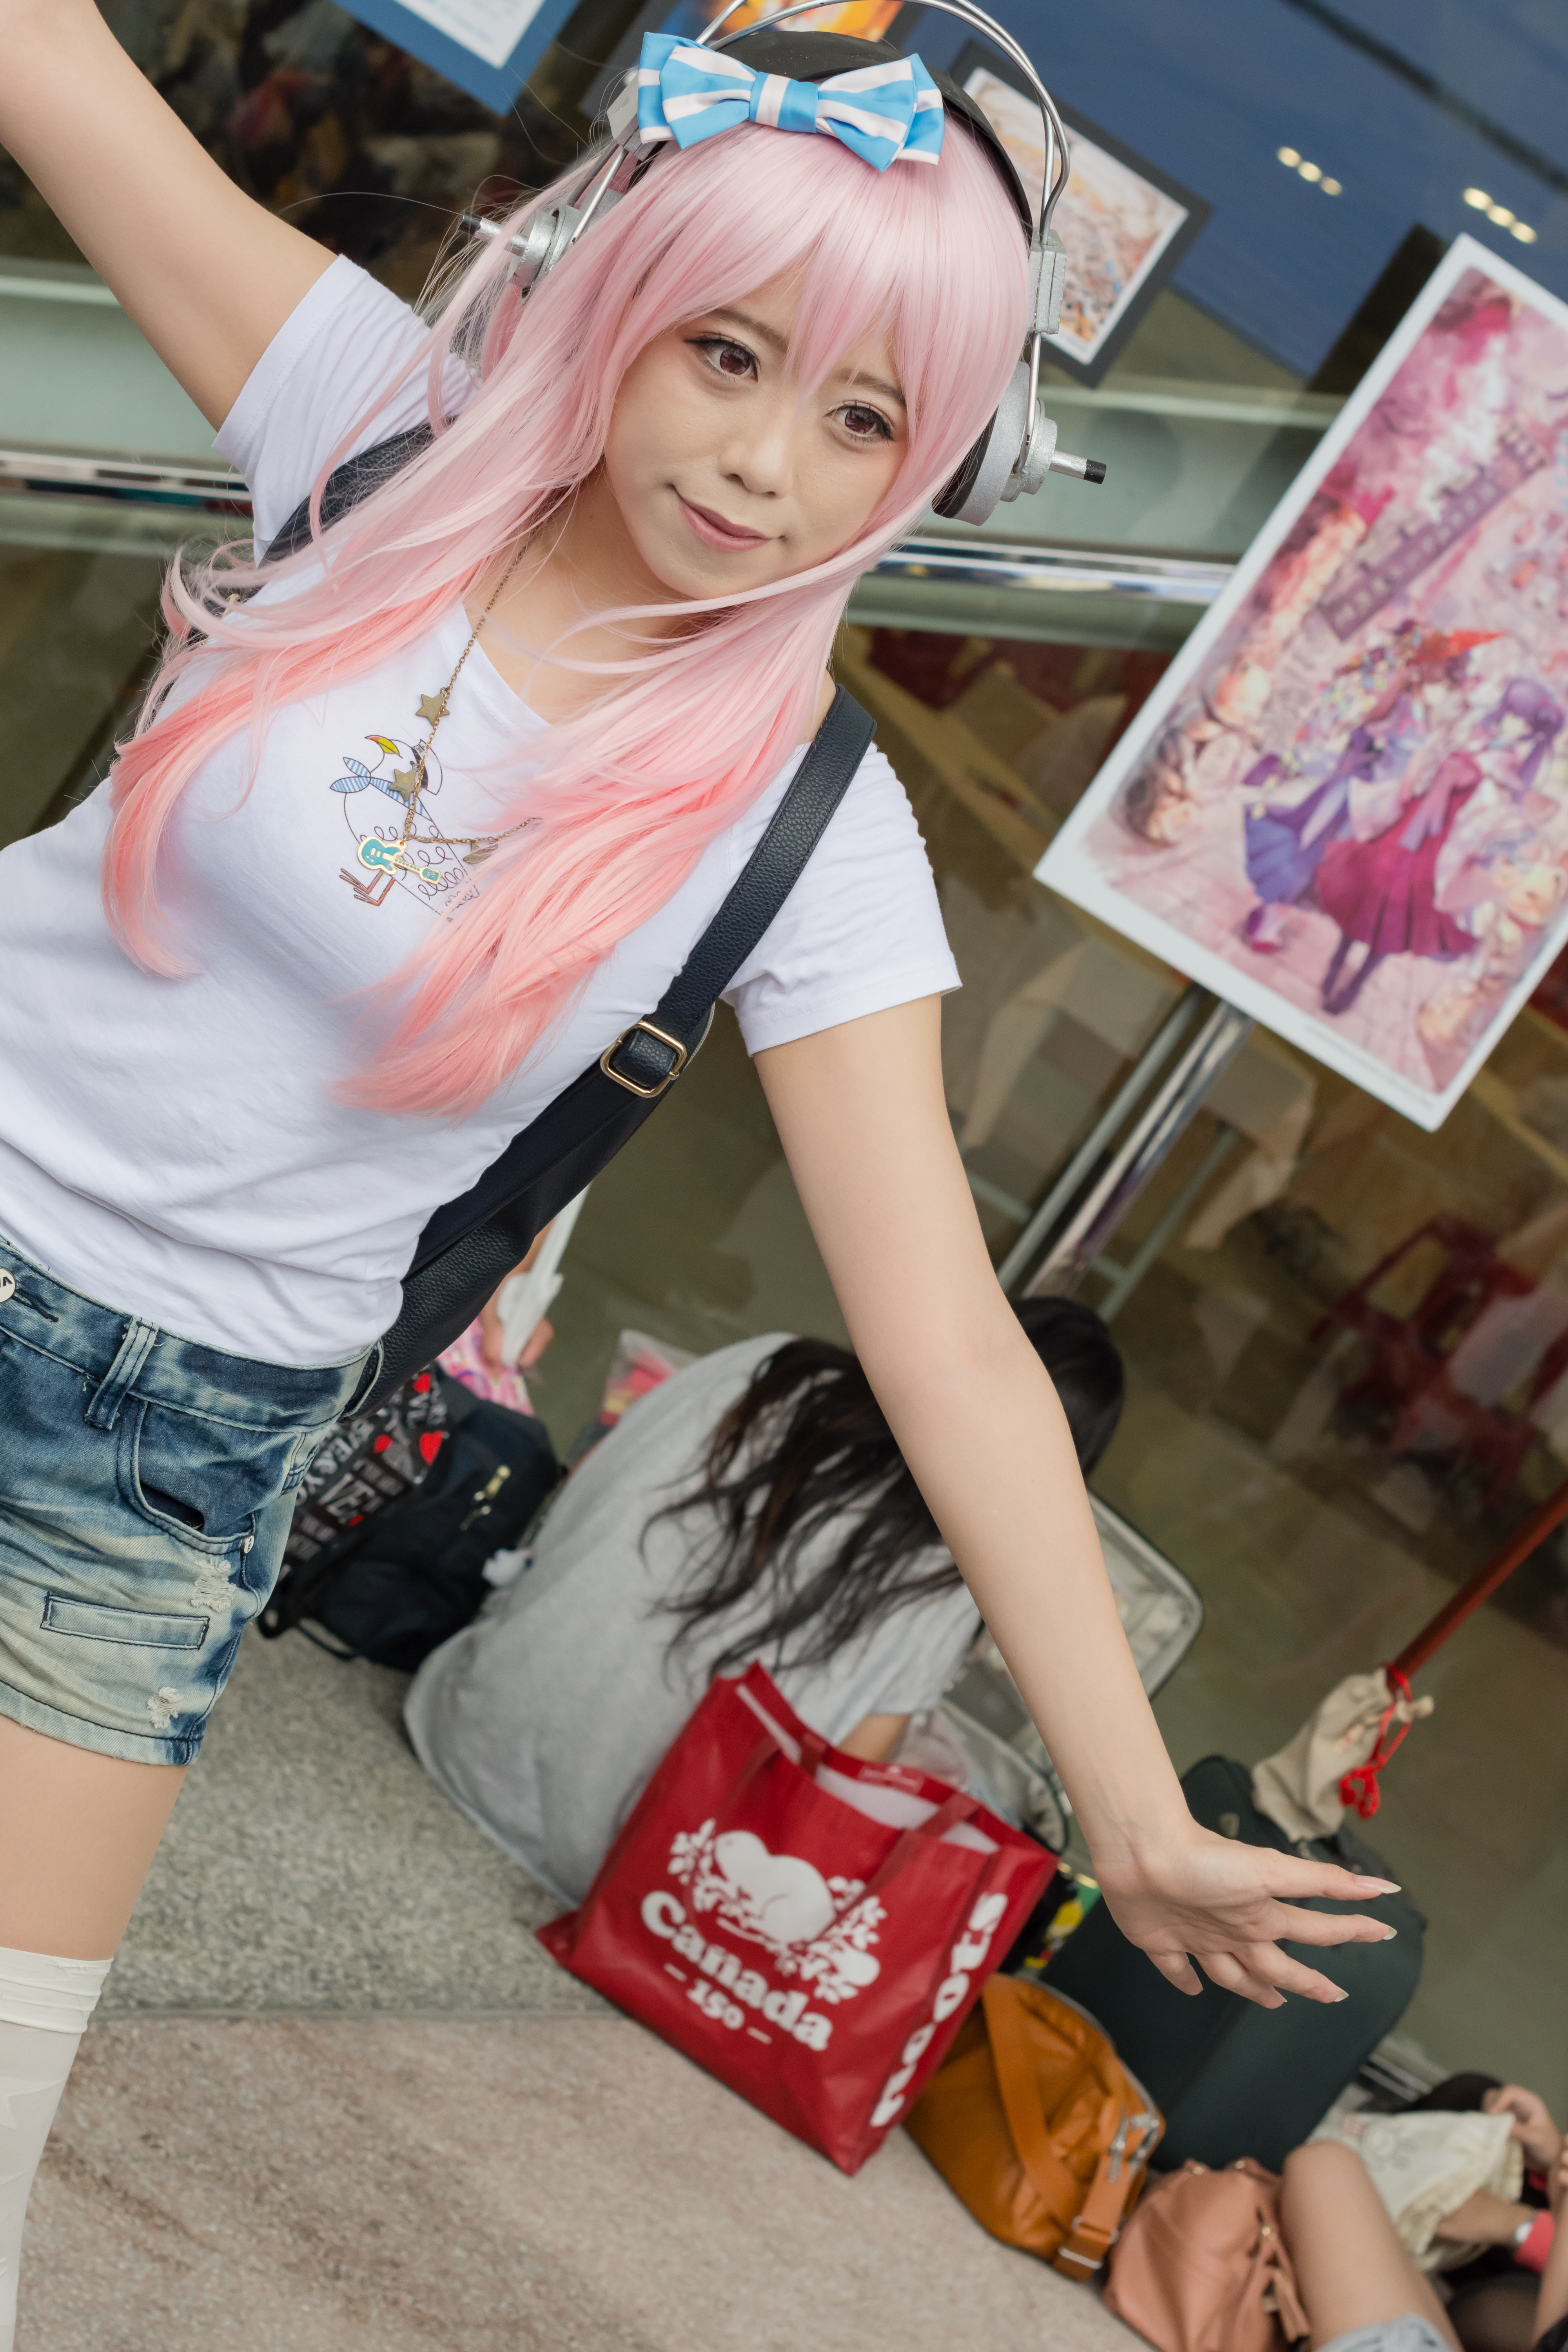 File:Cosplayer of Super Sonico at FF30 20170729c.jpg - Wikimedia Commons